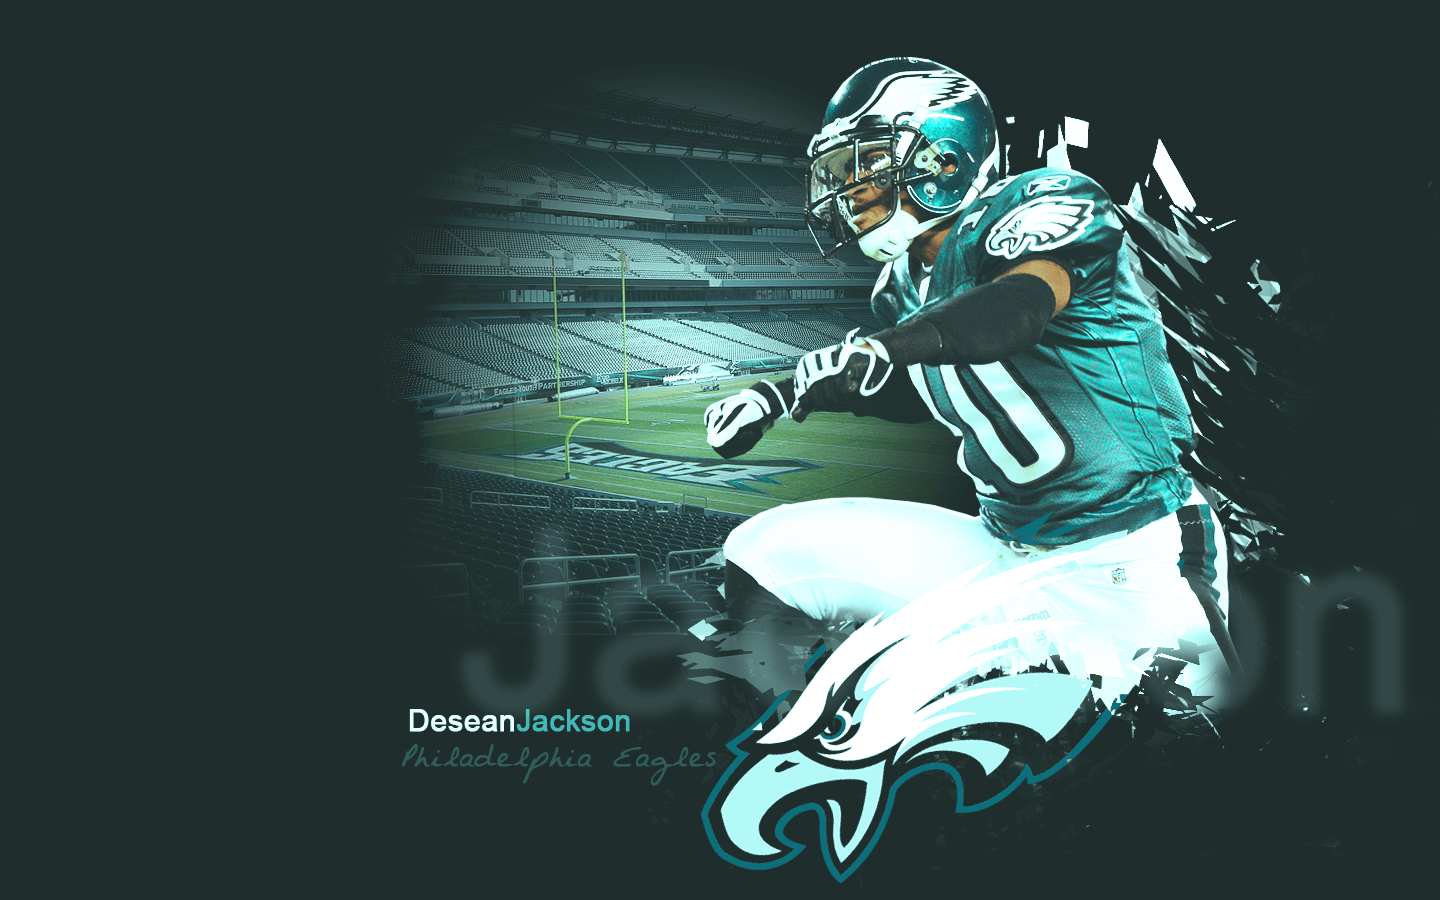 Philadelphia Eagles Wallpaper 30918 Wallpaper - Res: 1440x900 ...